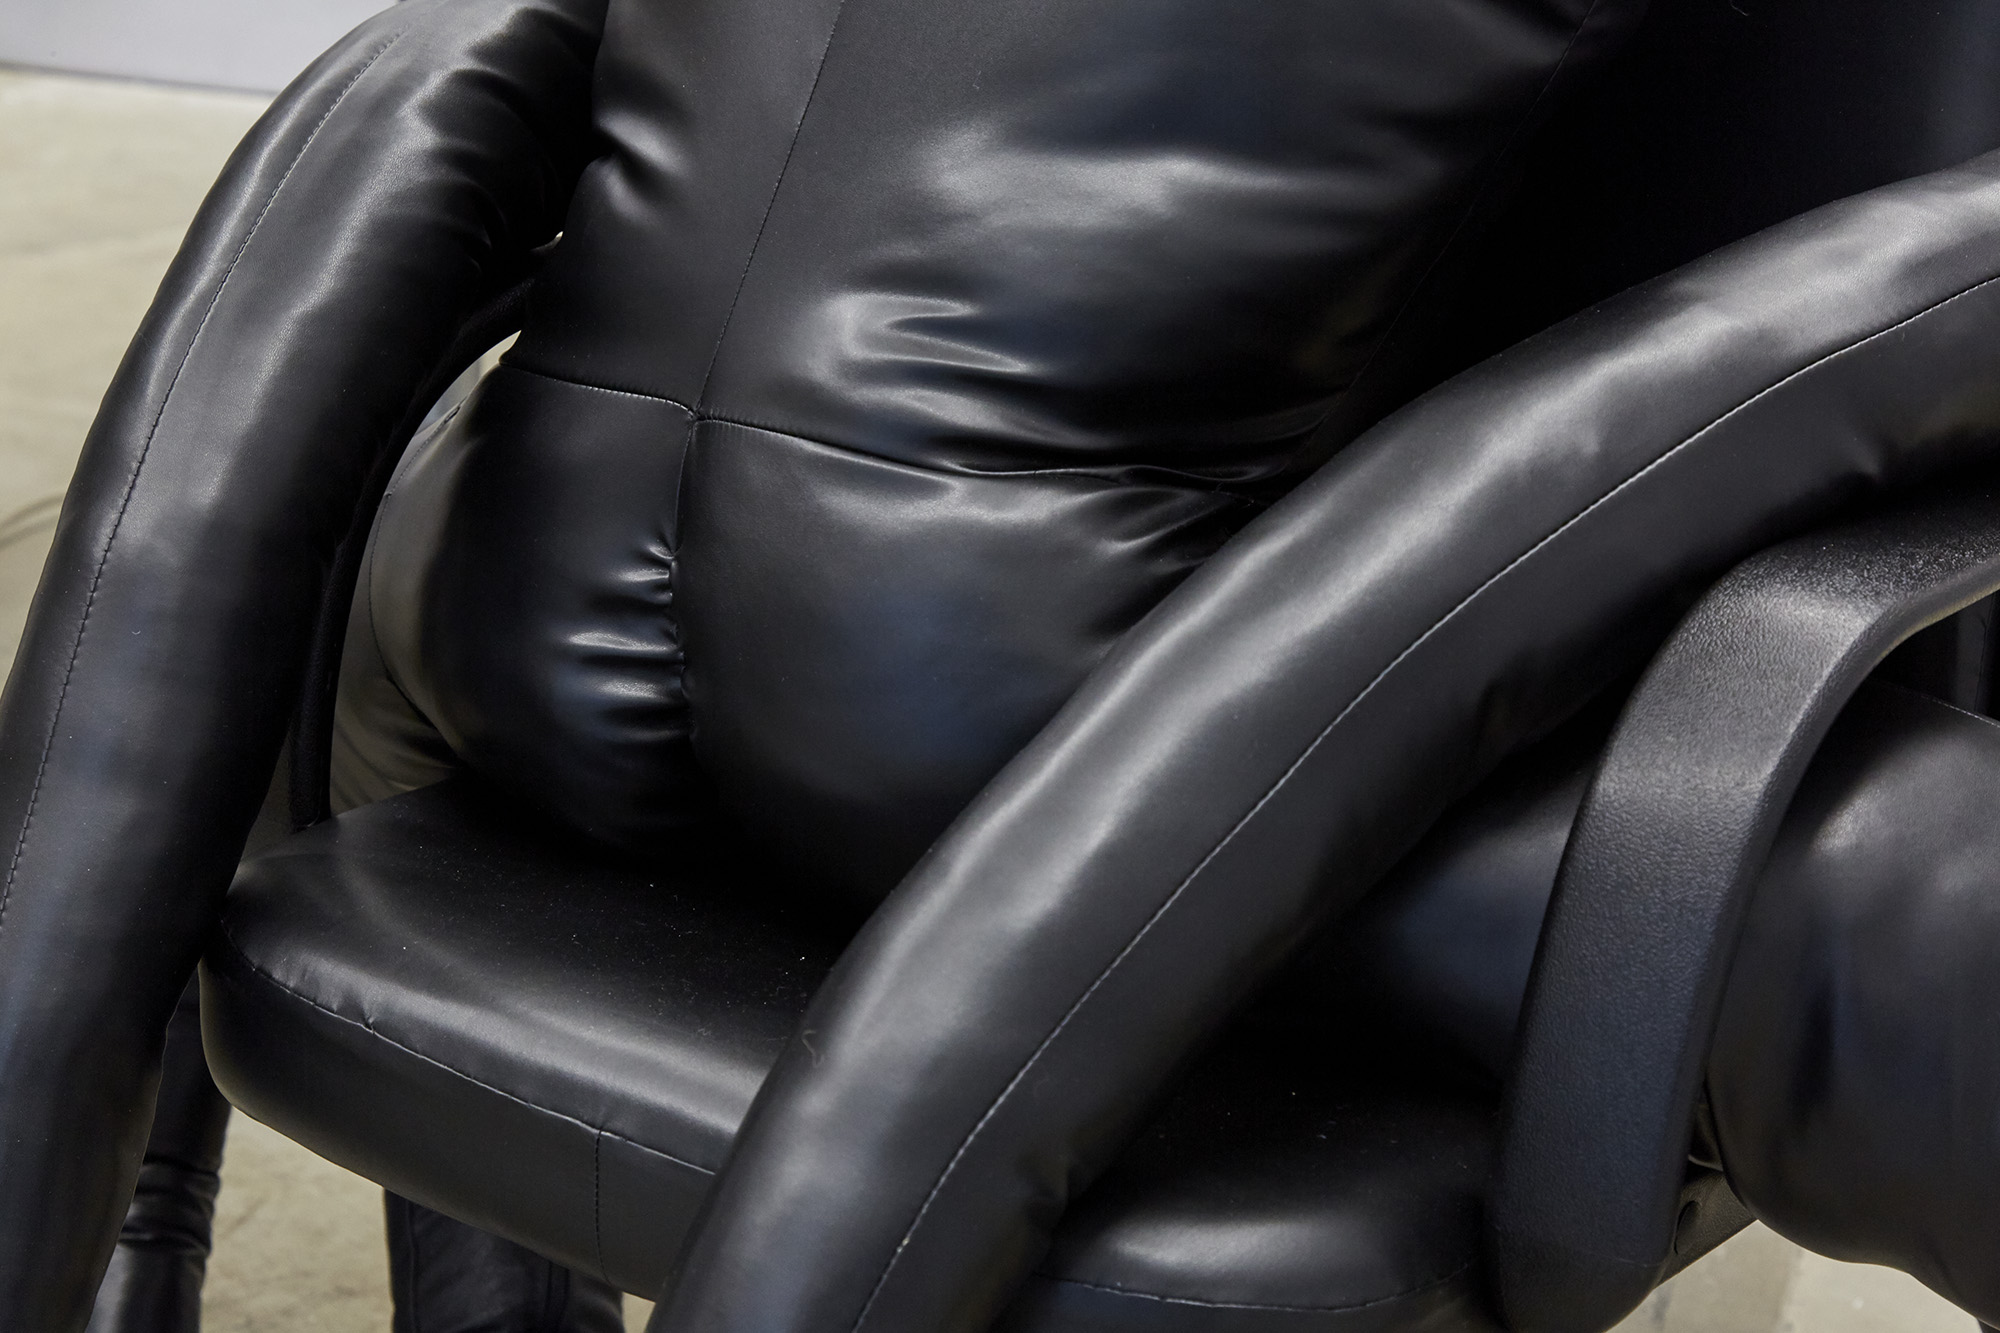 I've got you (made in collaboration with Mamoo Mendick) - detail Leather, boots, filling, office chair 100 x 160 x 150cm, 2019